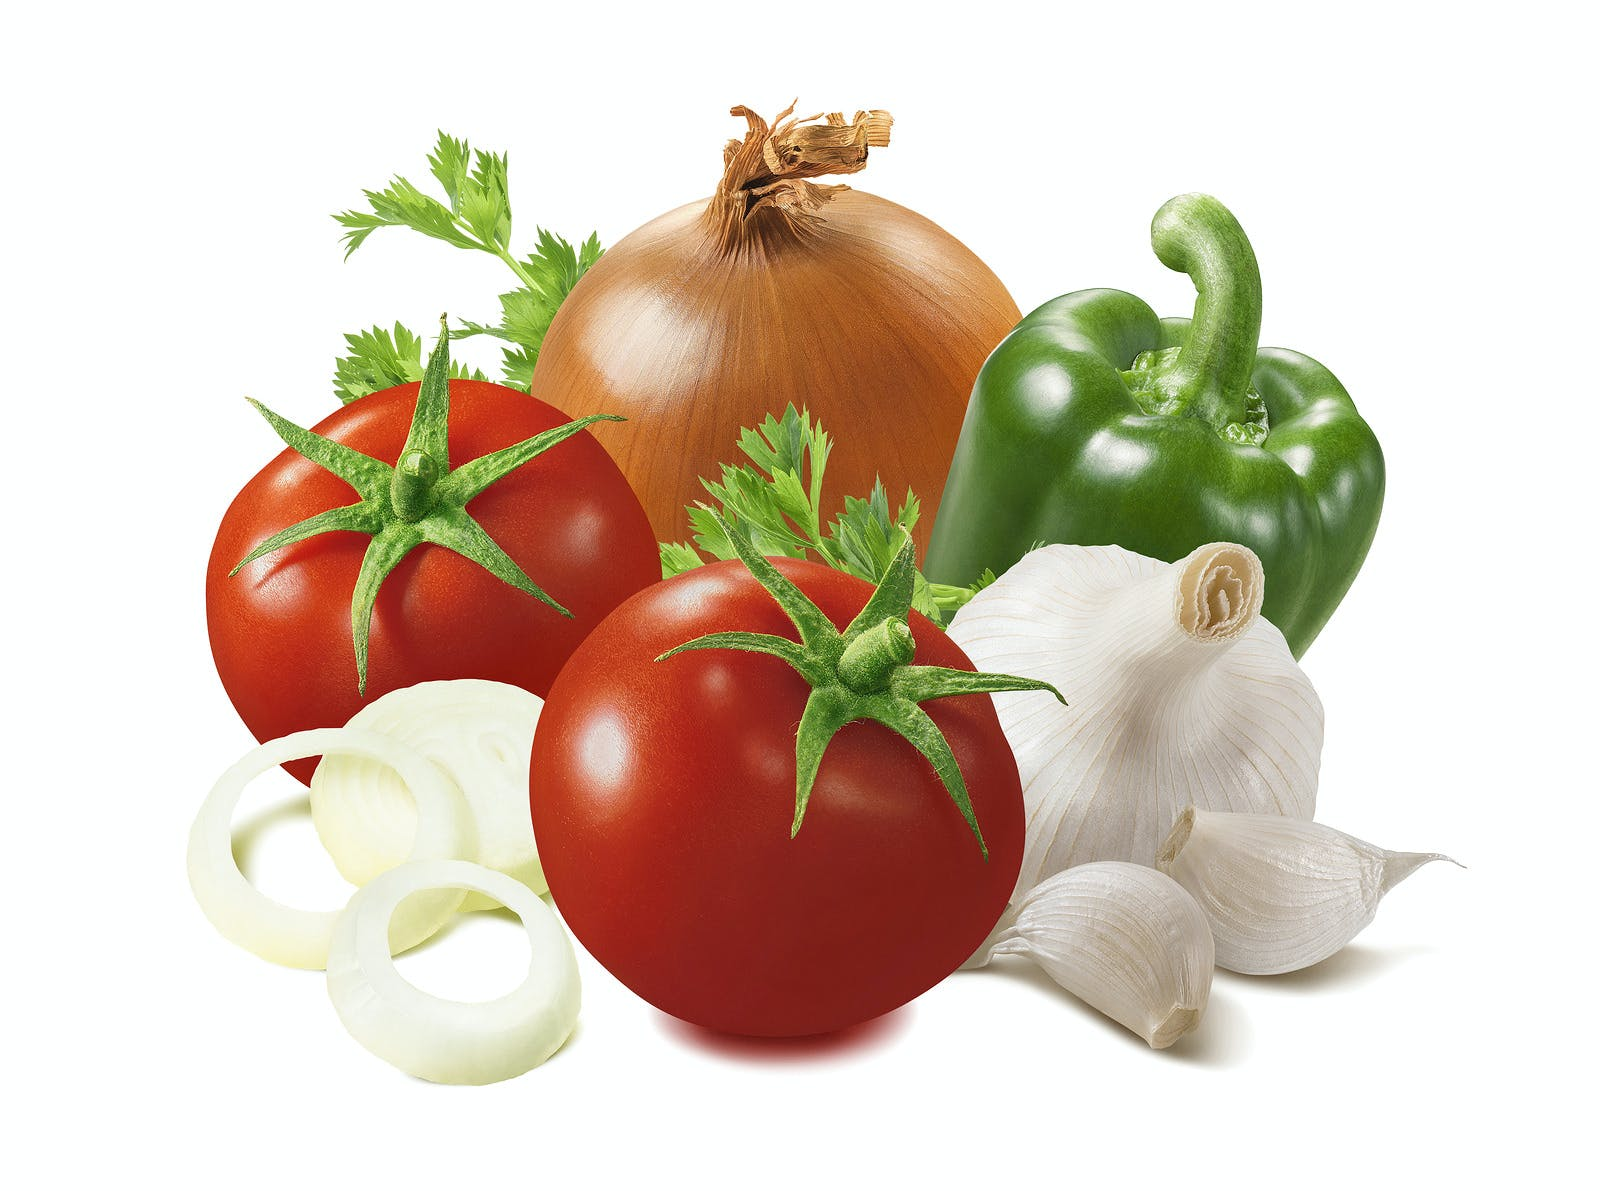 tomatoes, peppers, onions and garlic